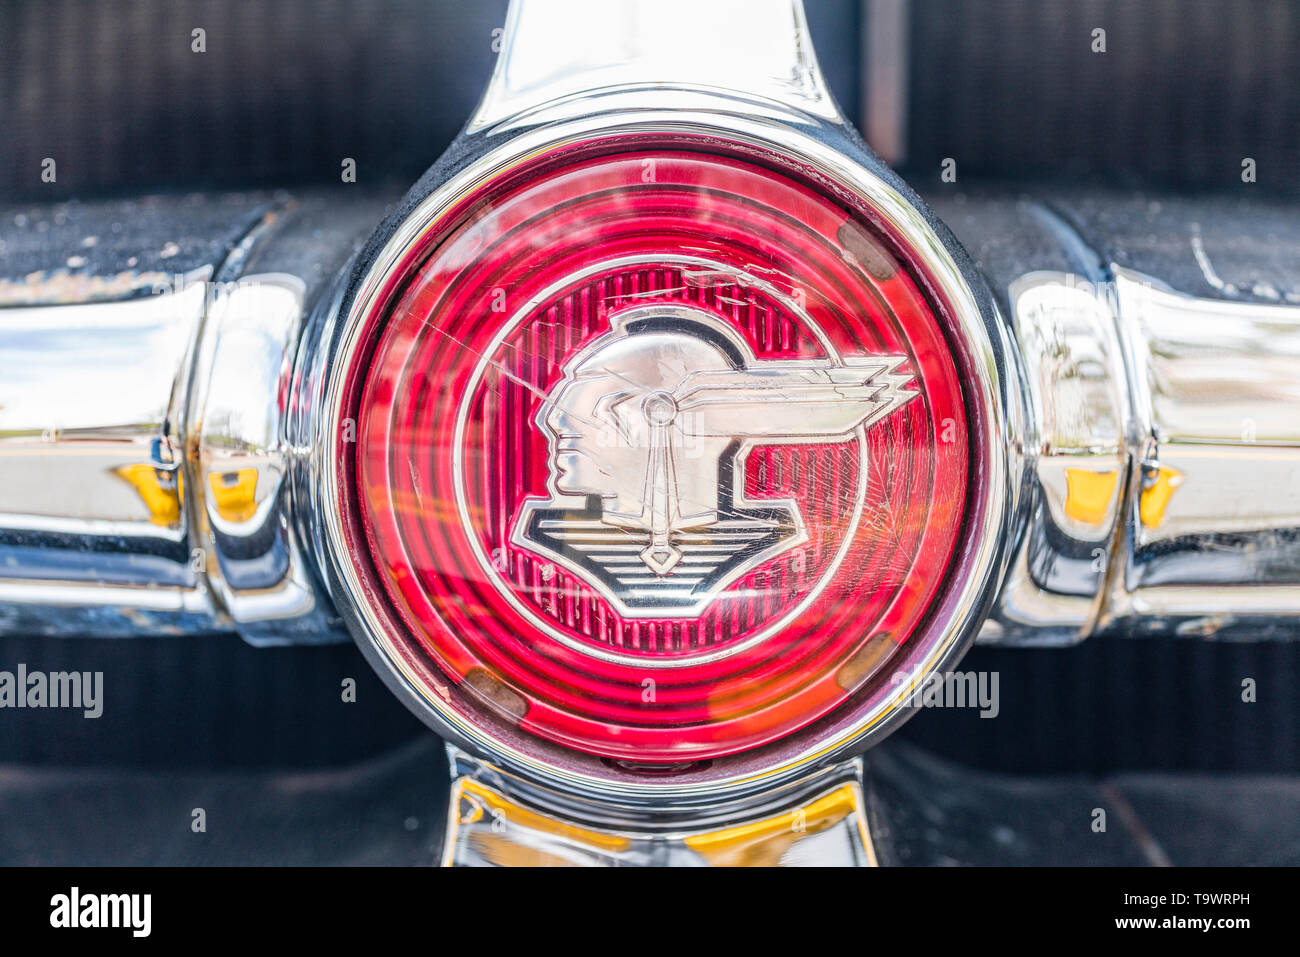 A detail of the 1952 Pontiac automobile's logo of the head and headdress of Chief Pontiac. This design was a result of the update made in the 1930's t - Stock Image